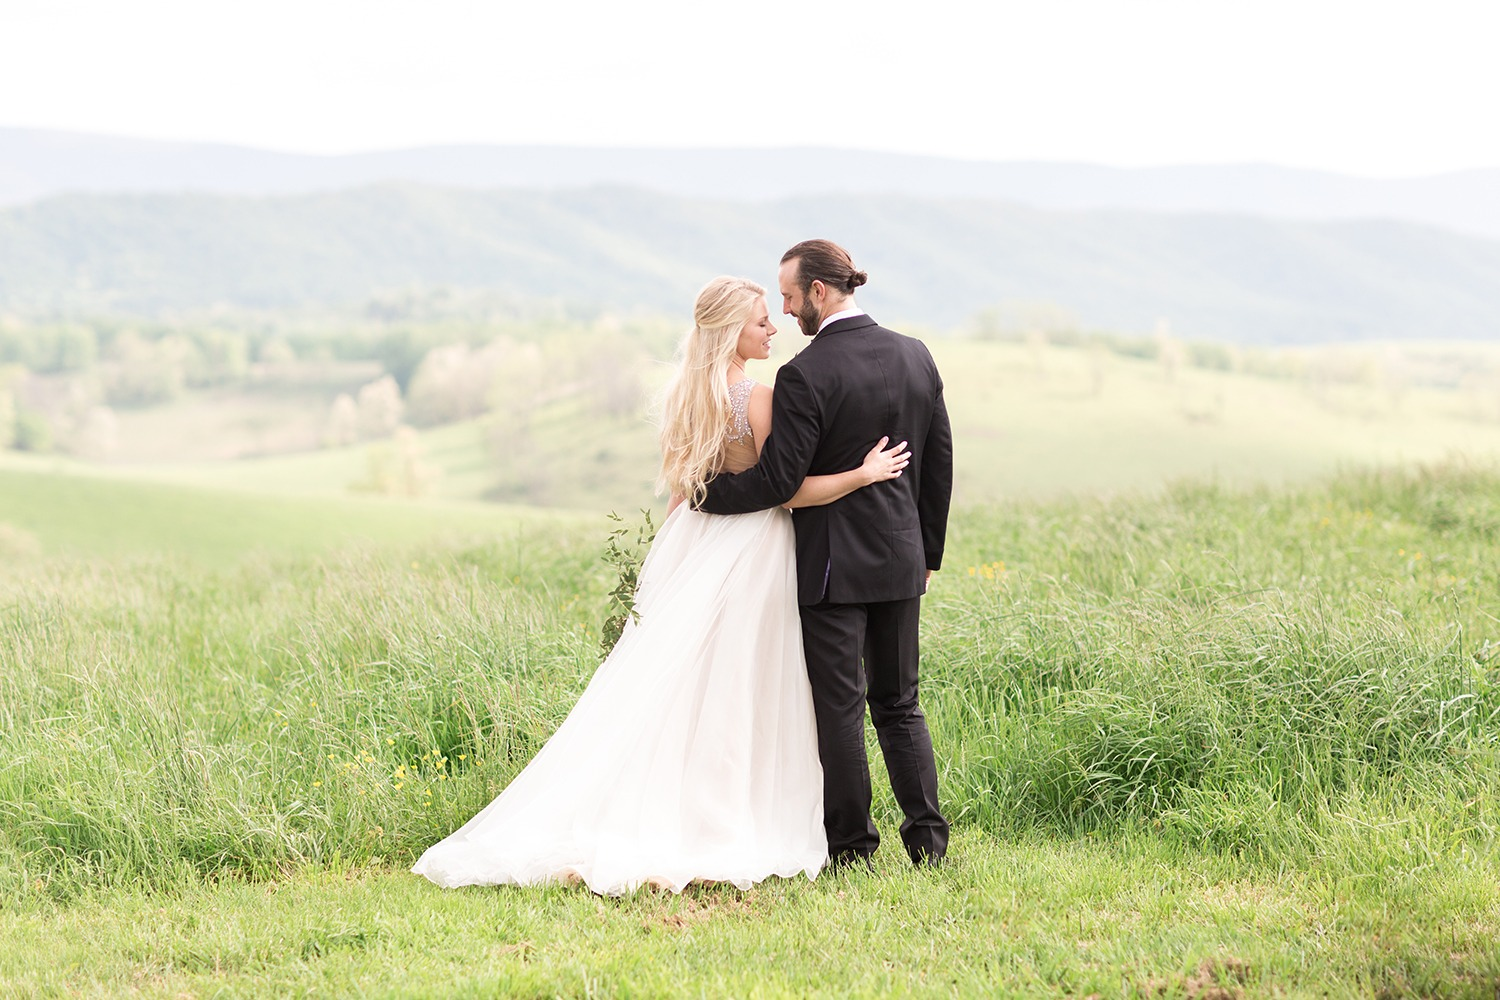 Need A Little Help With Your Wedding Ideas? Why Not Plan A Shoot